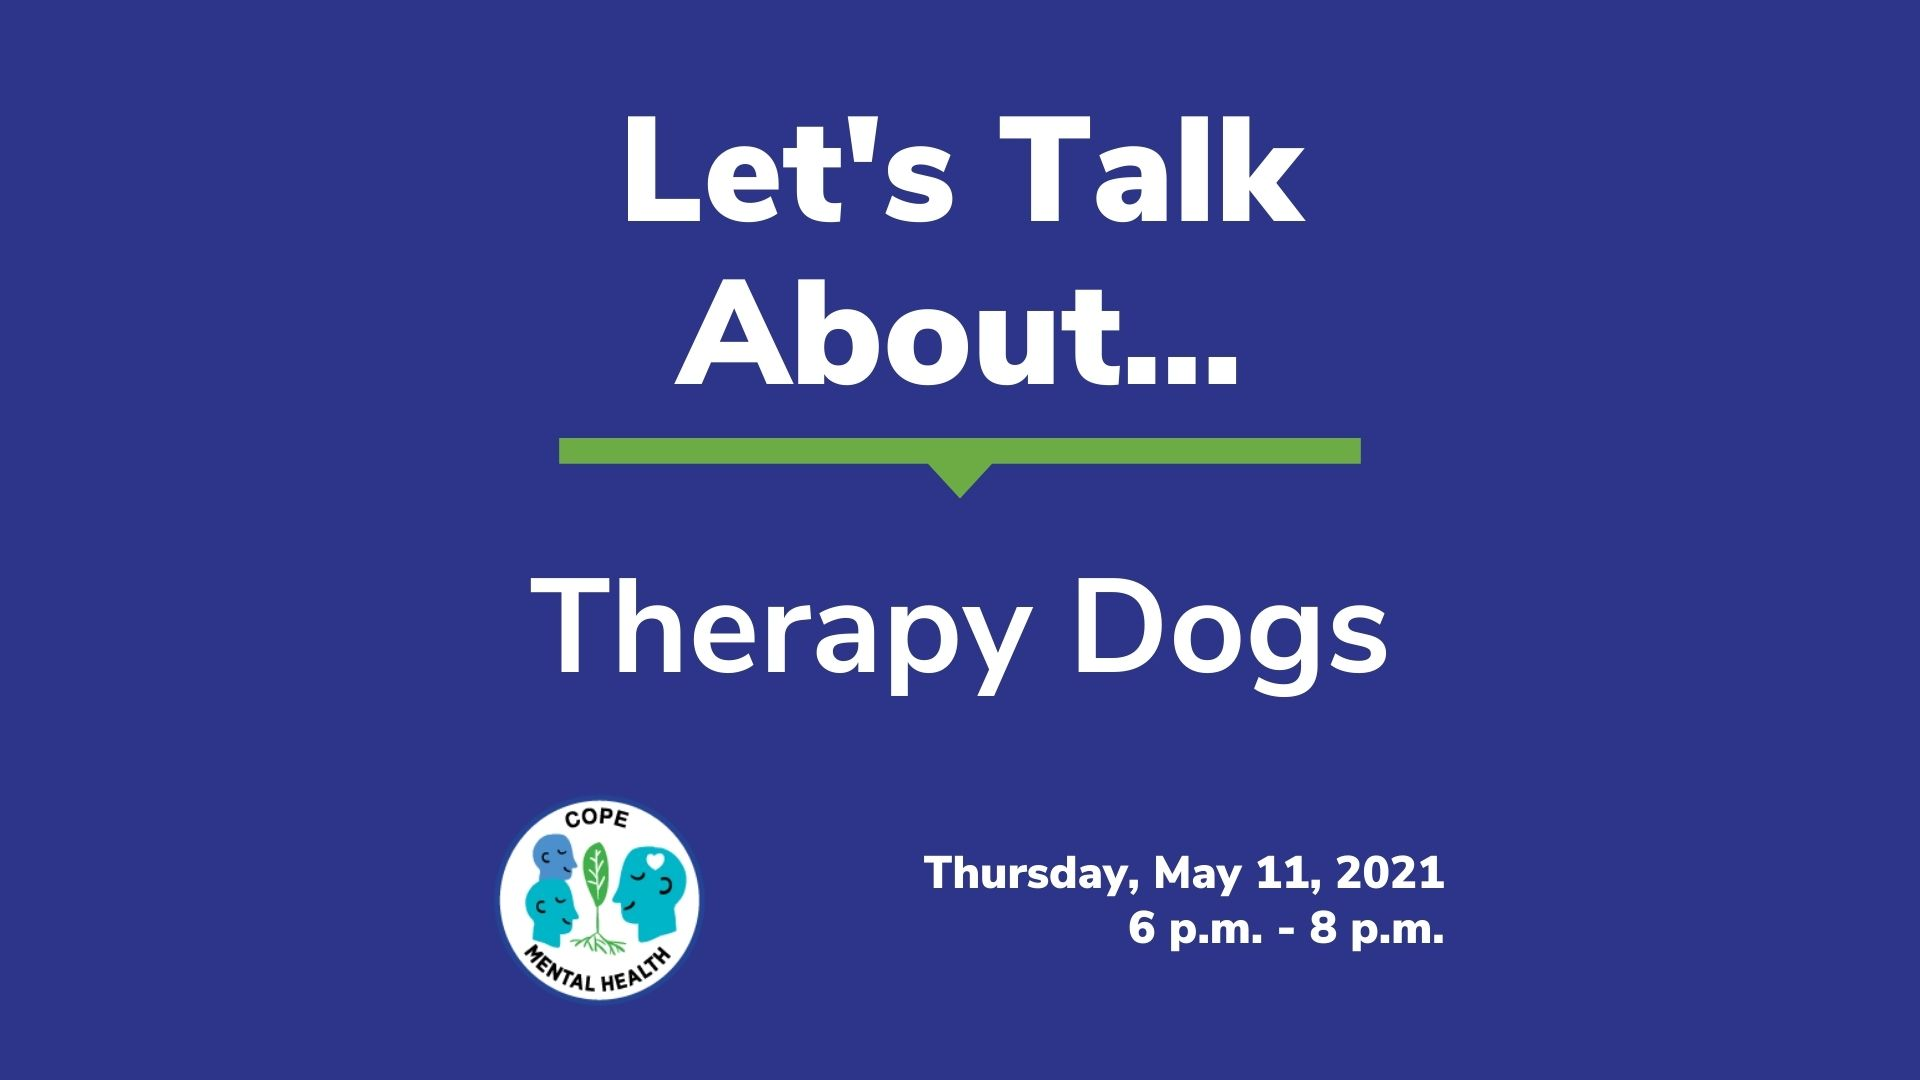 Let's Talk About Therapy Dogs